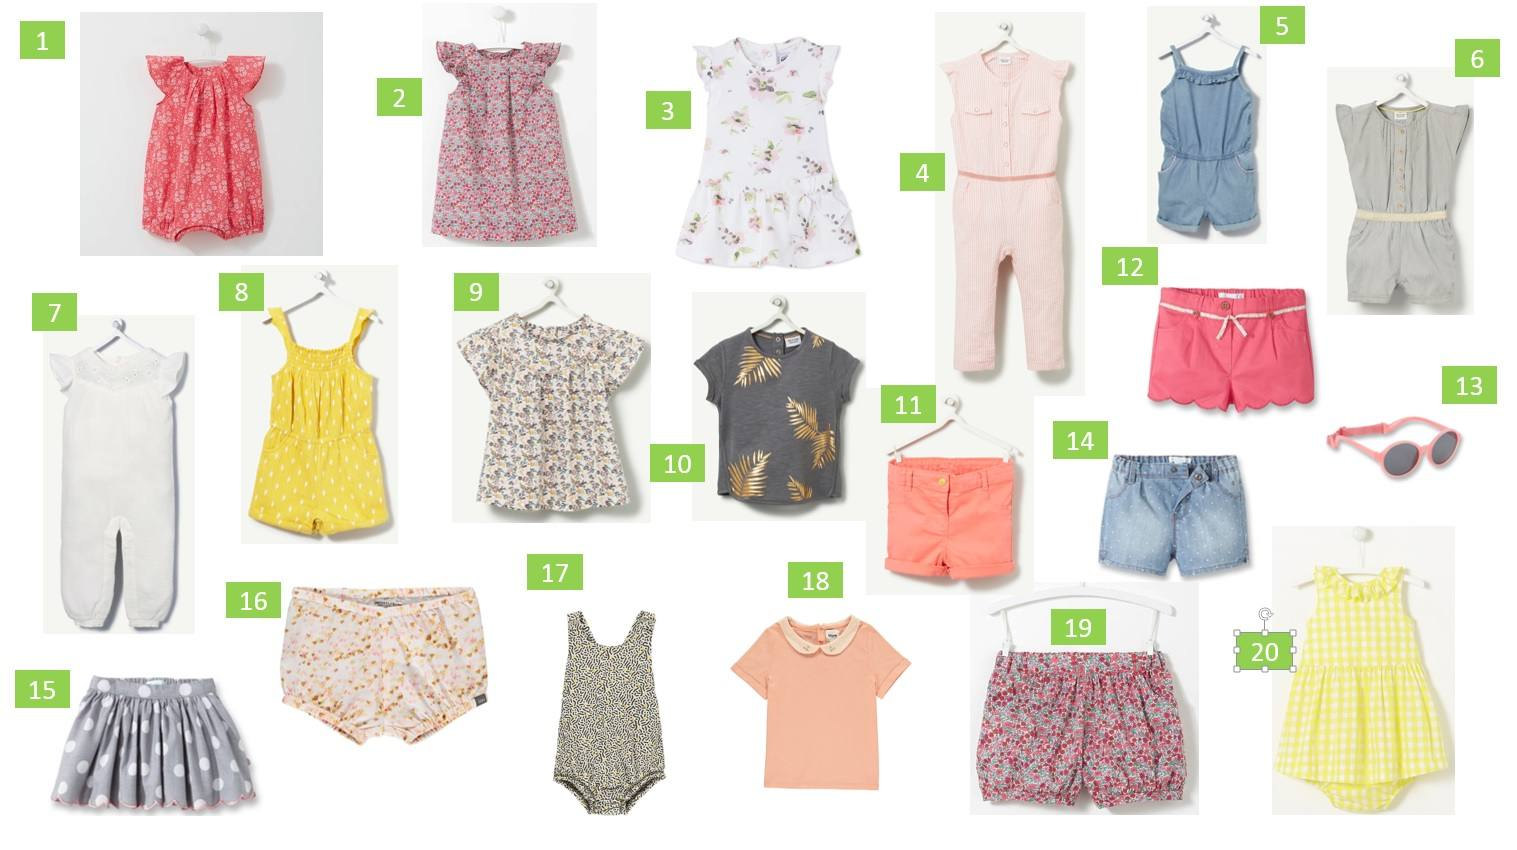 SELECTION SOLDES – SPECIALE BABY